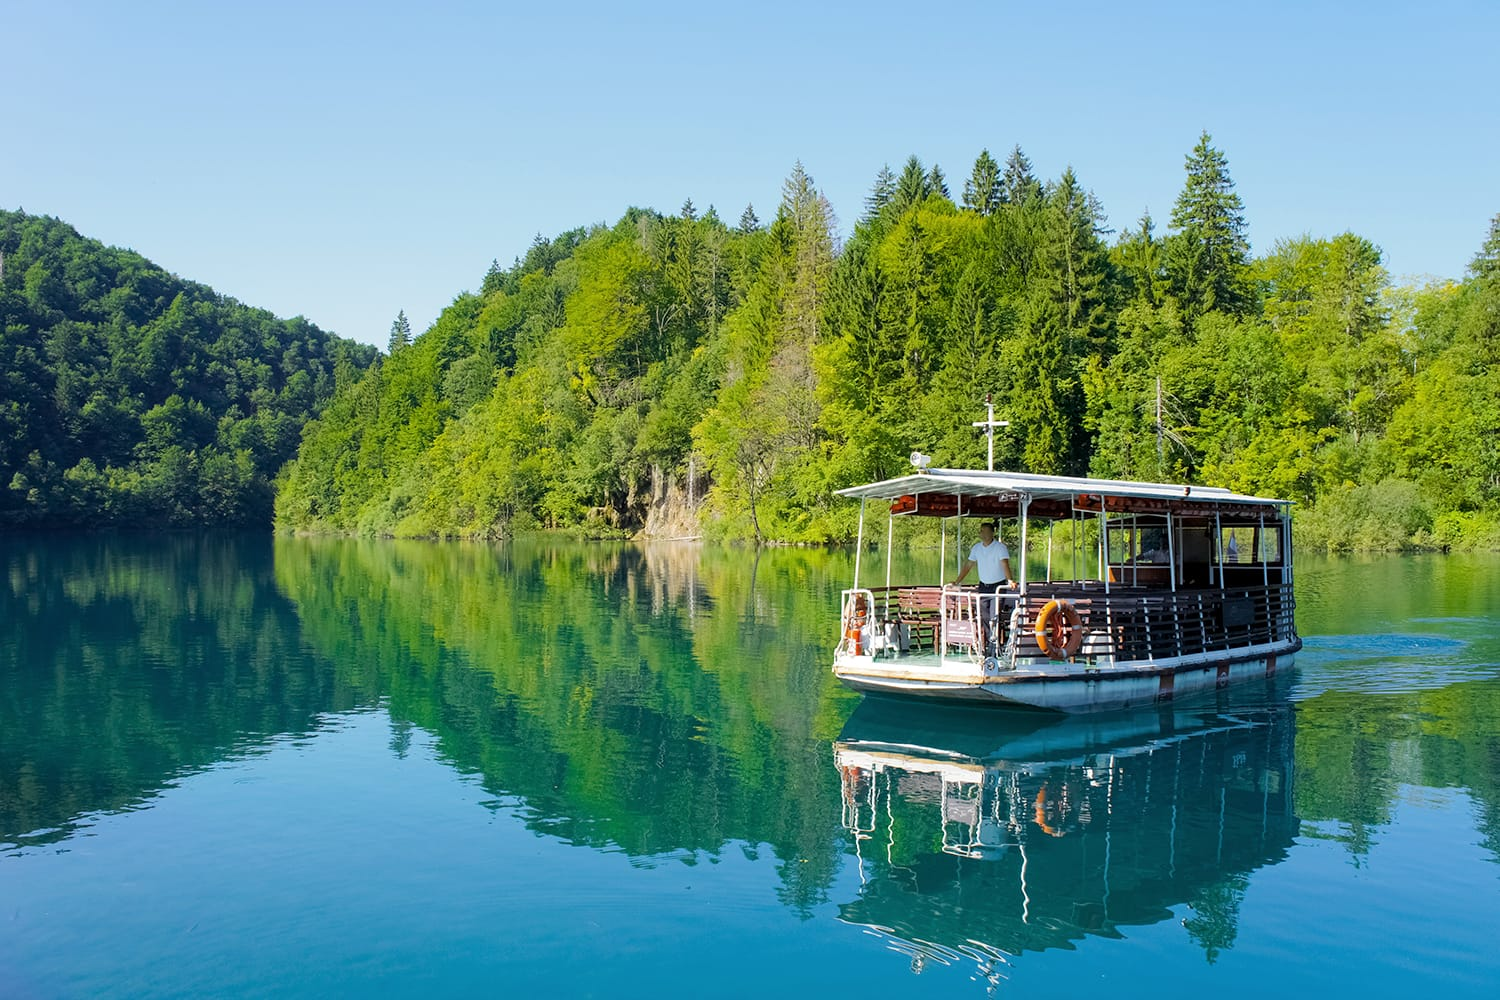 River boat at Plitvice Lakes National Park, Croatia